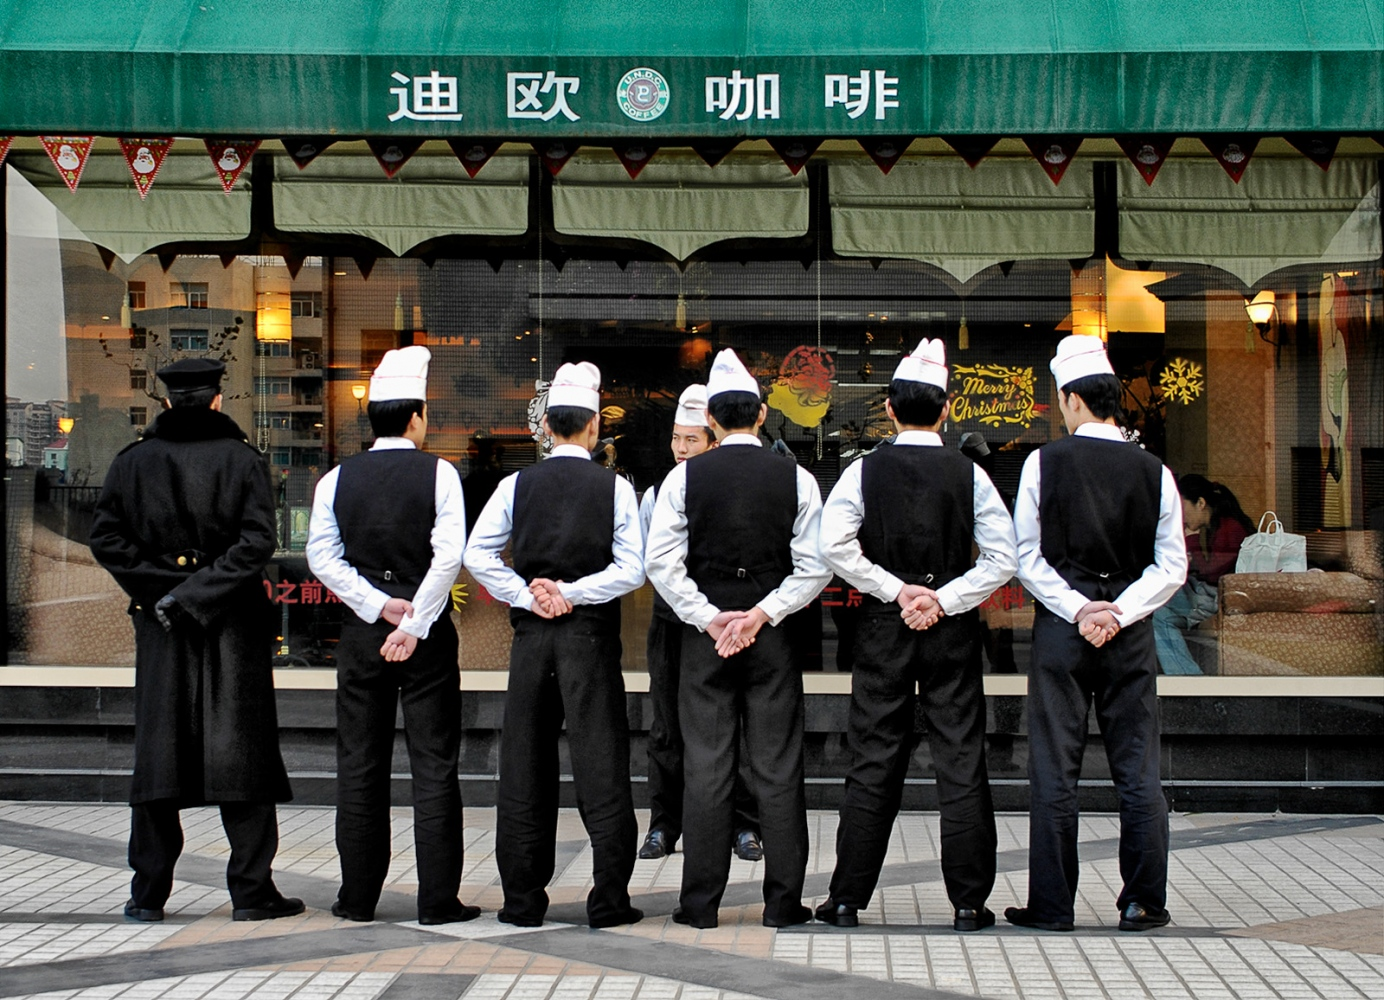 Waiters, Shanghai